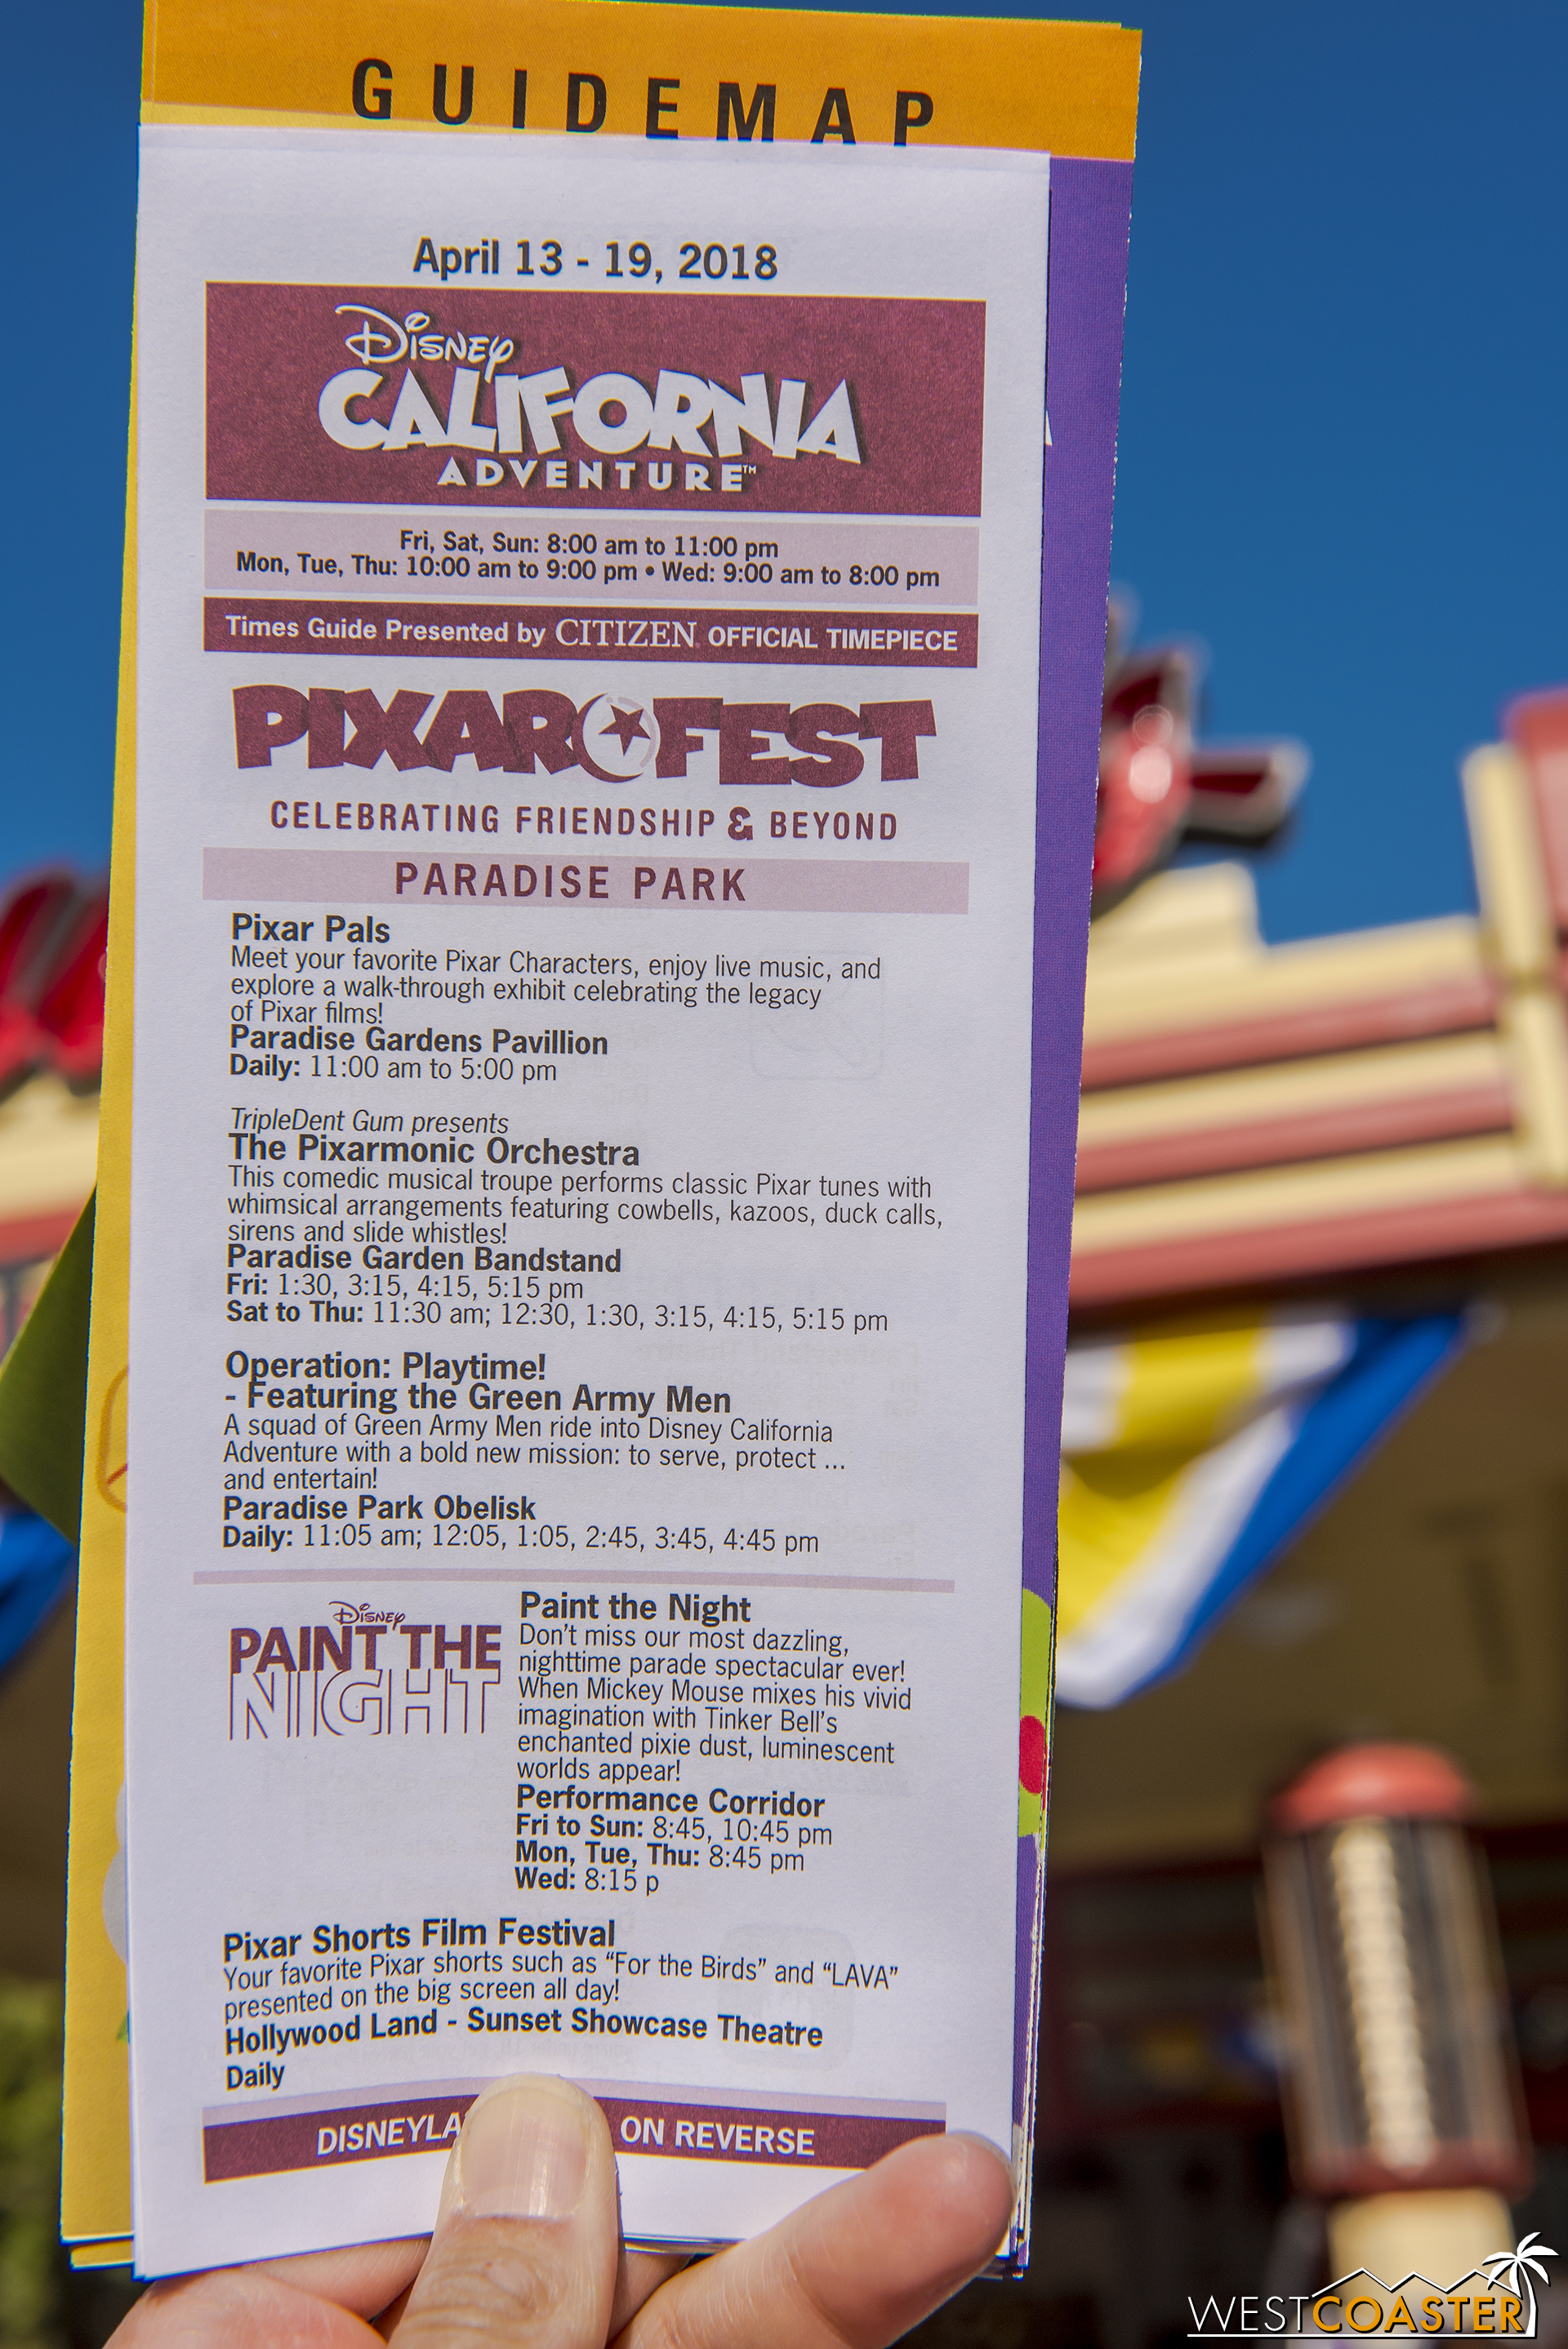 Entertainment schedule over at DCA.